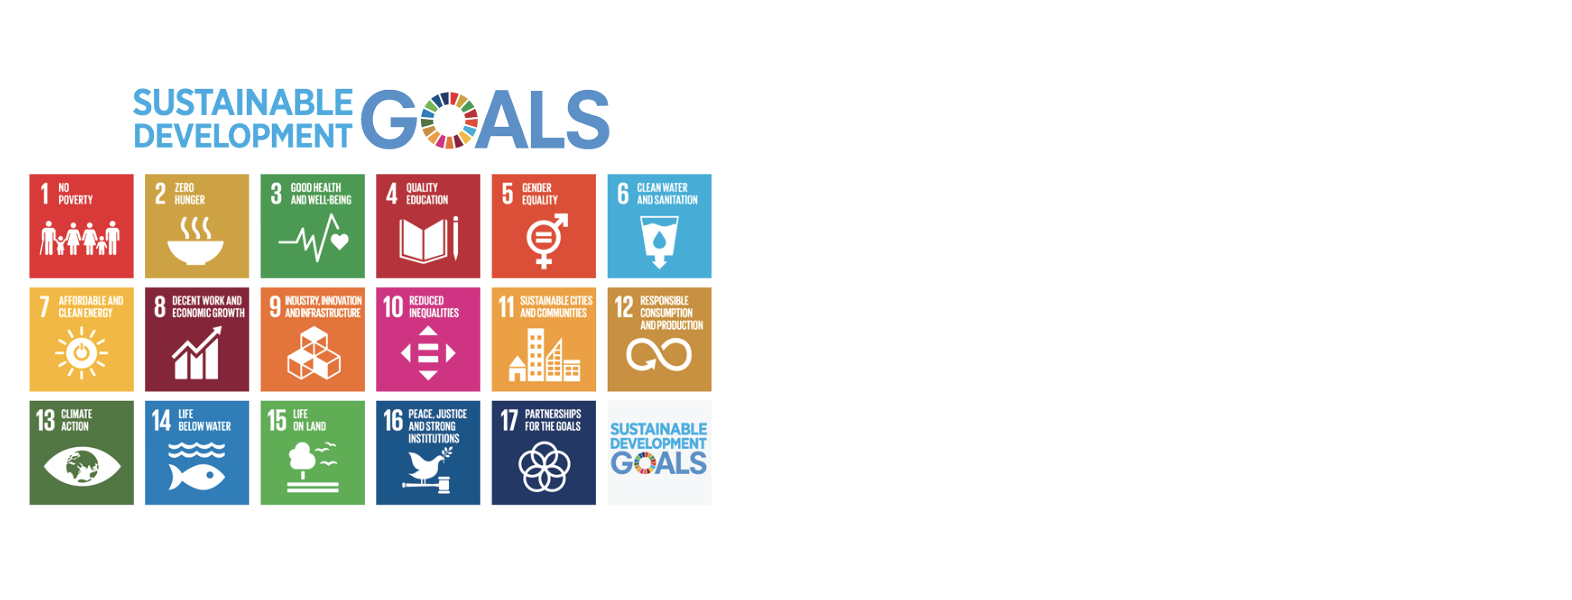 Björn Borg and the UN Sustainable Development Goals